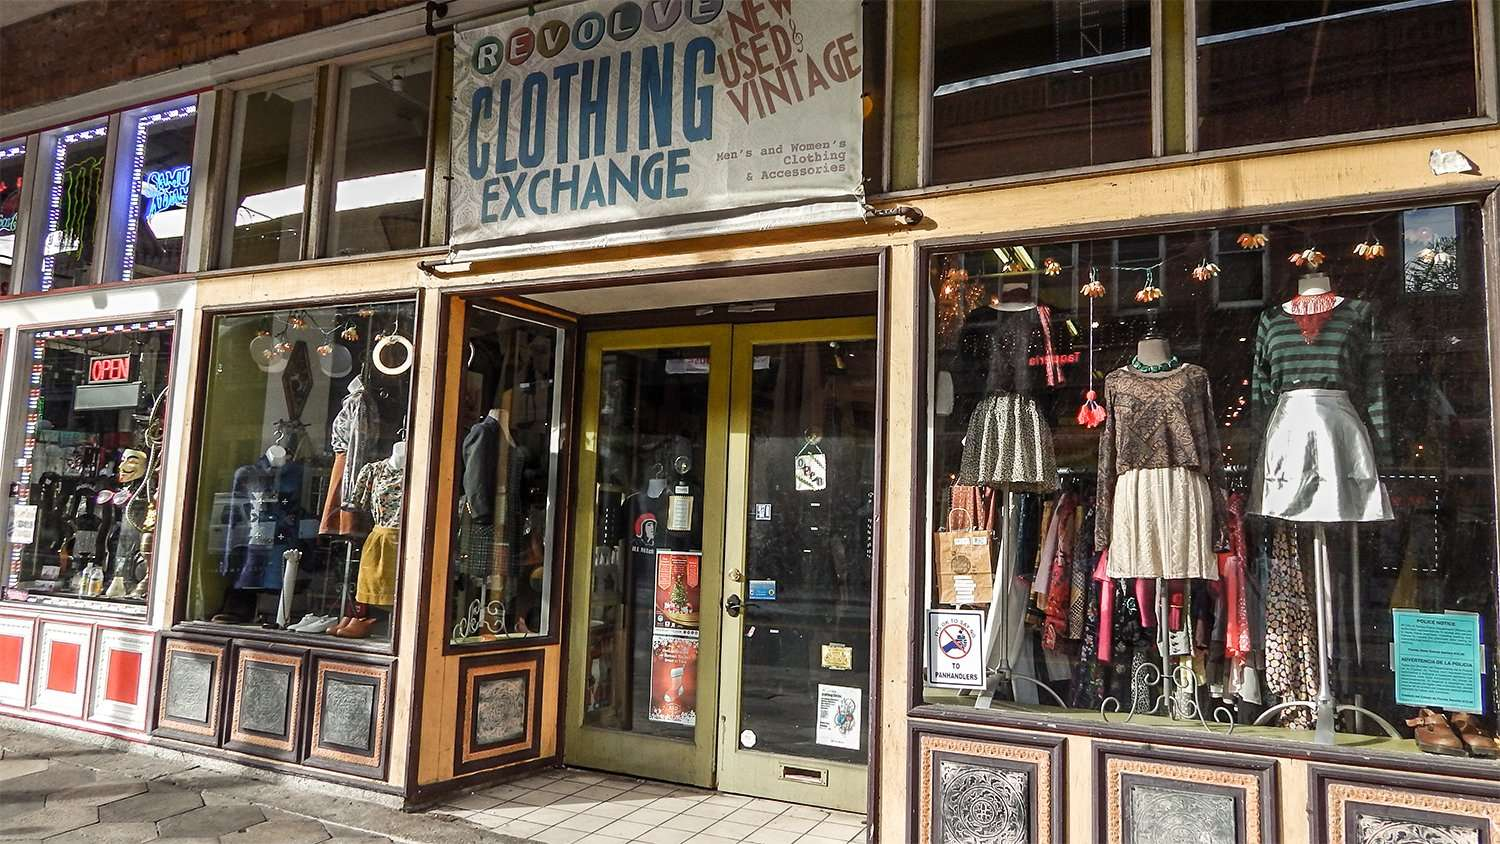 Exchange clothing store